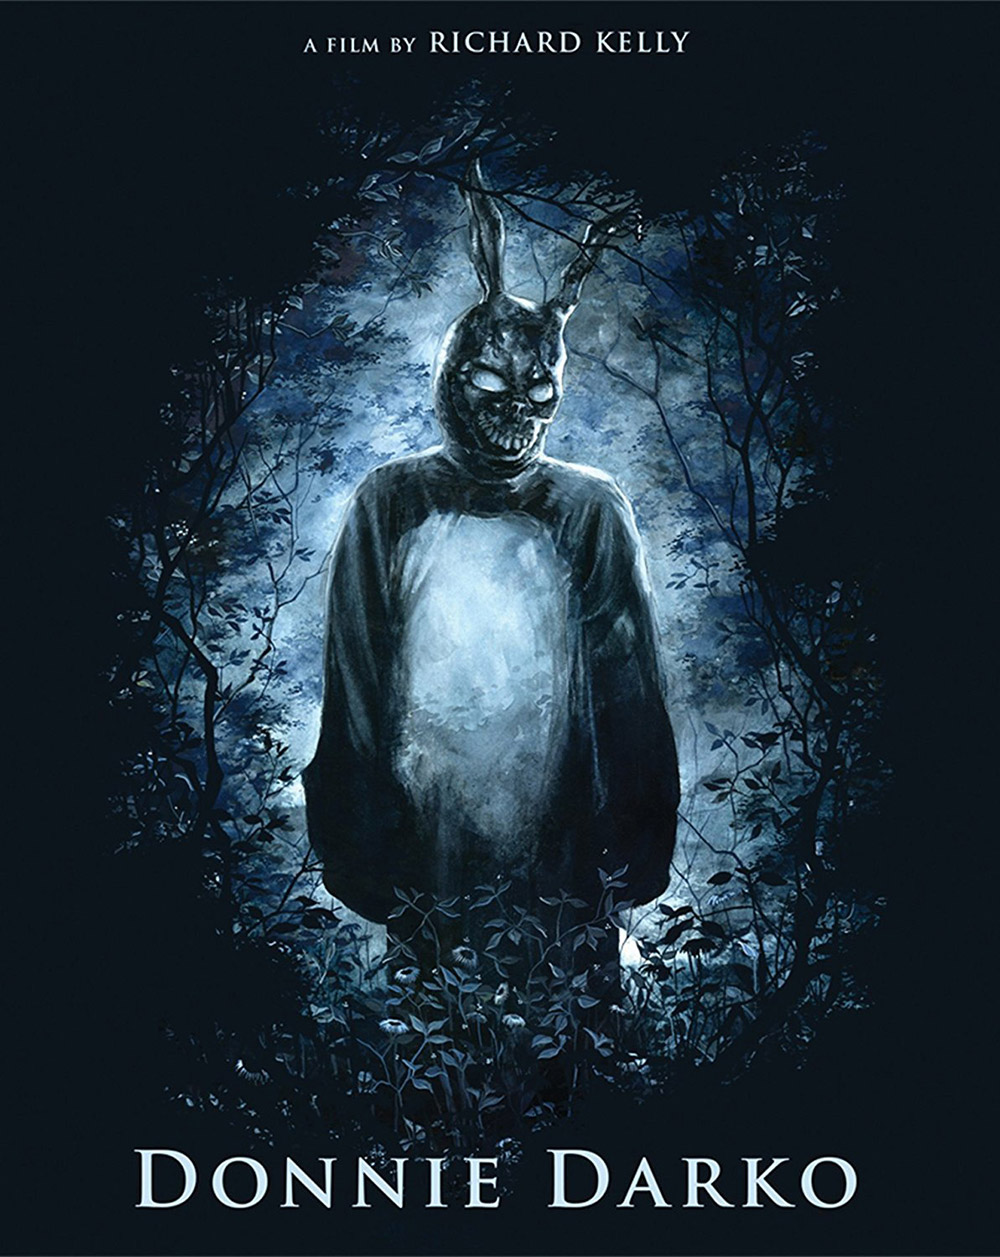 Donnie Darko (4-Disc Limited Edition) Blu-ray Review ...